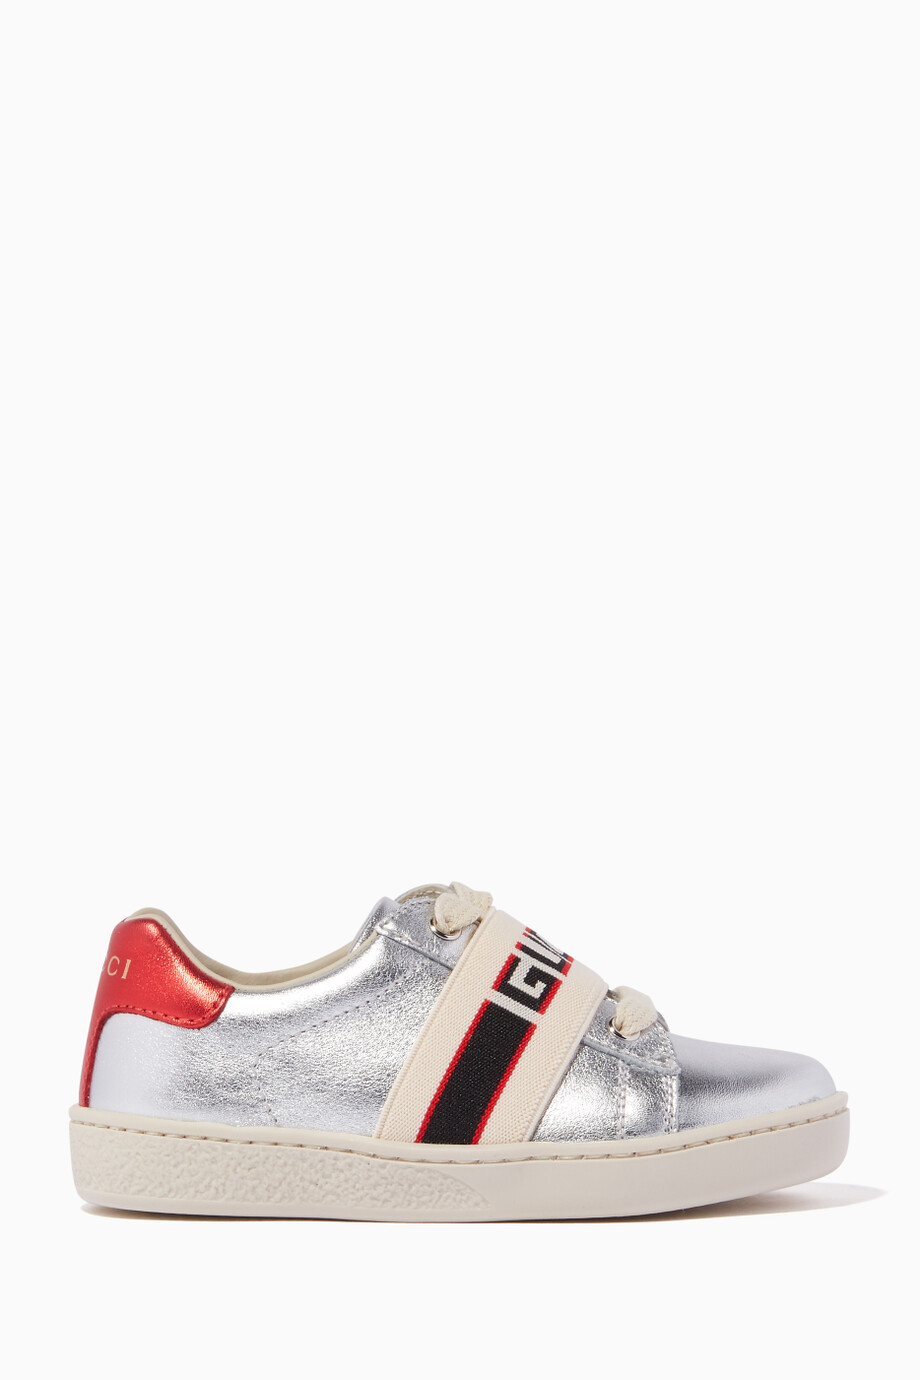 0562b8d45 Shop Gucci Silver Ace Leather Sneakers for Kids | Ounass Saudi